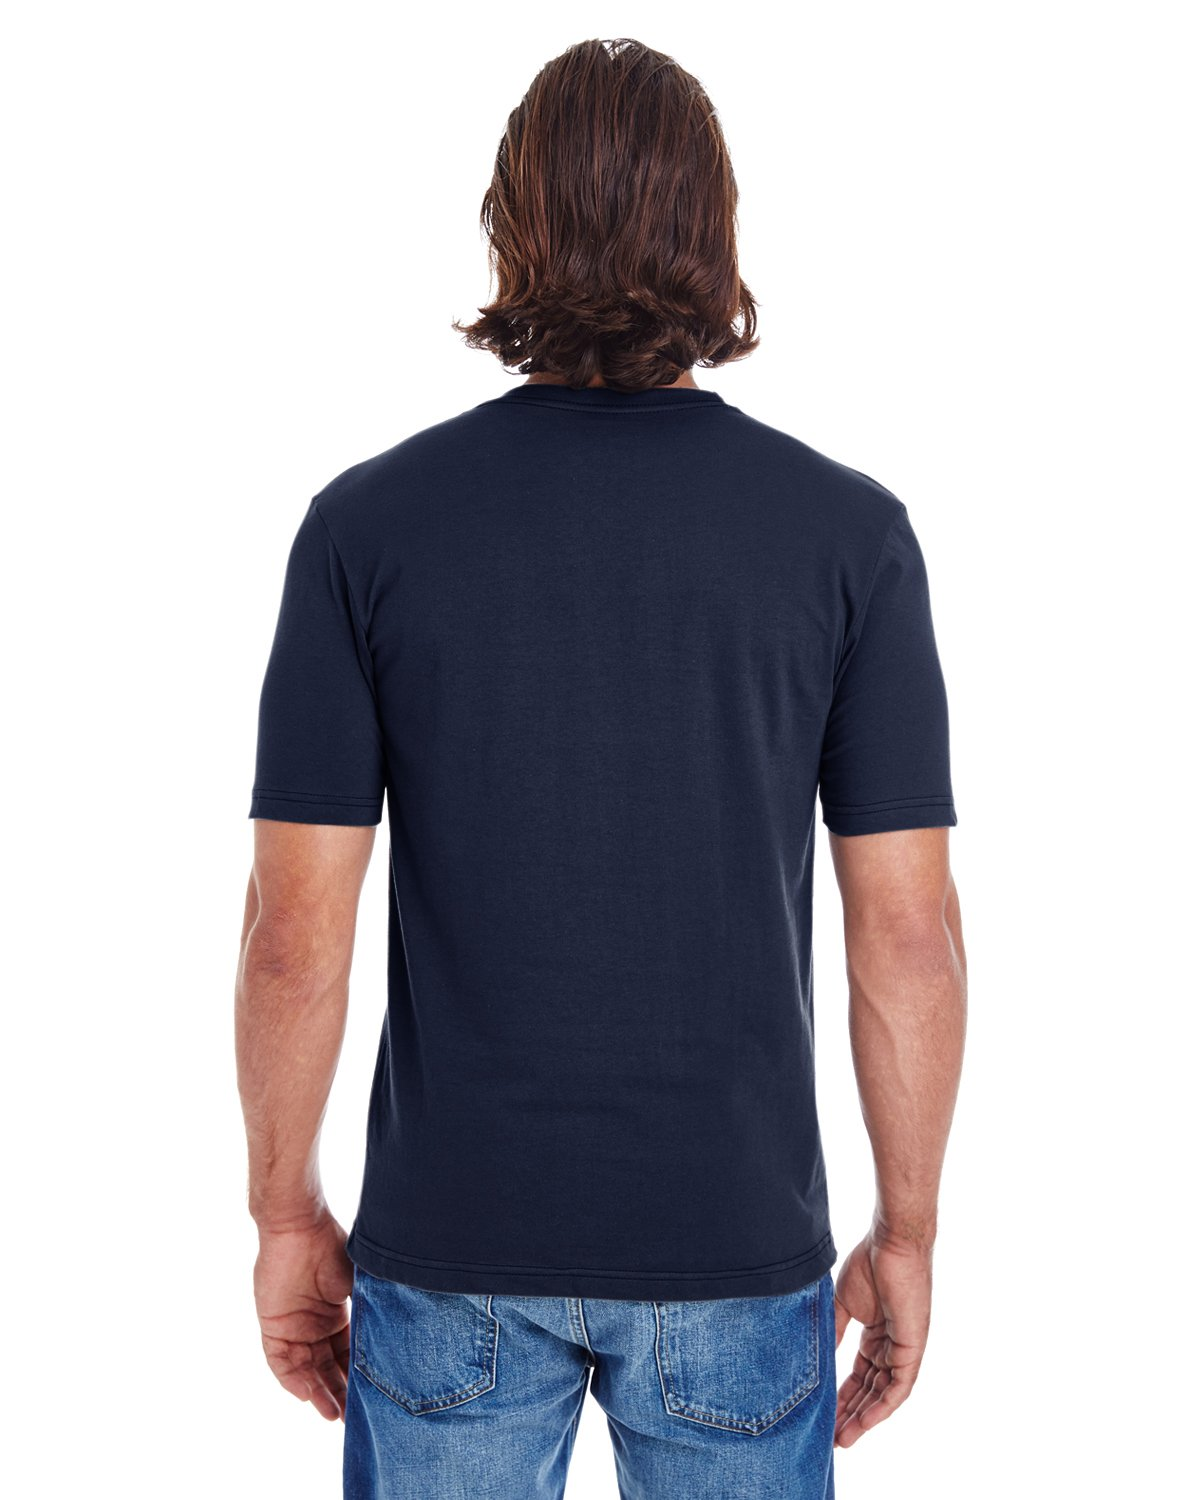 American Apparel 24321W Unisex Fine Jersey Short Sleeve Classic V-Neck Navy S by American Apparel (Image #3)